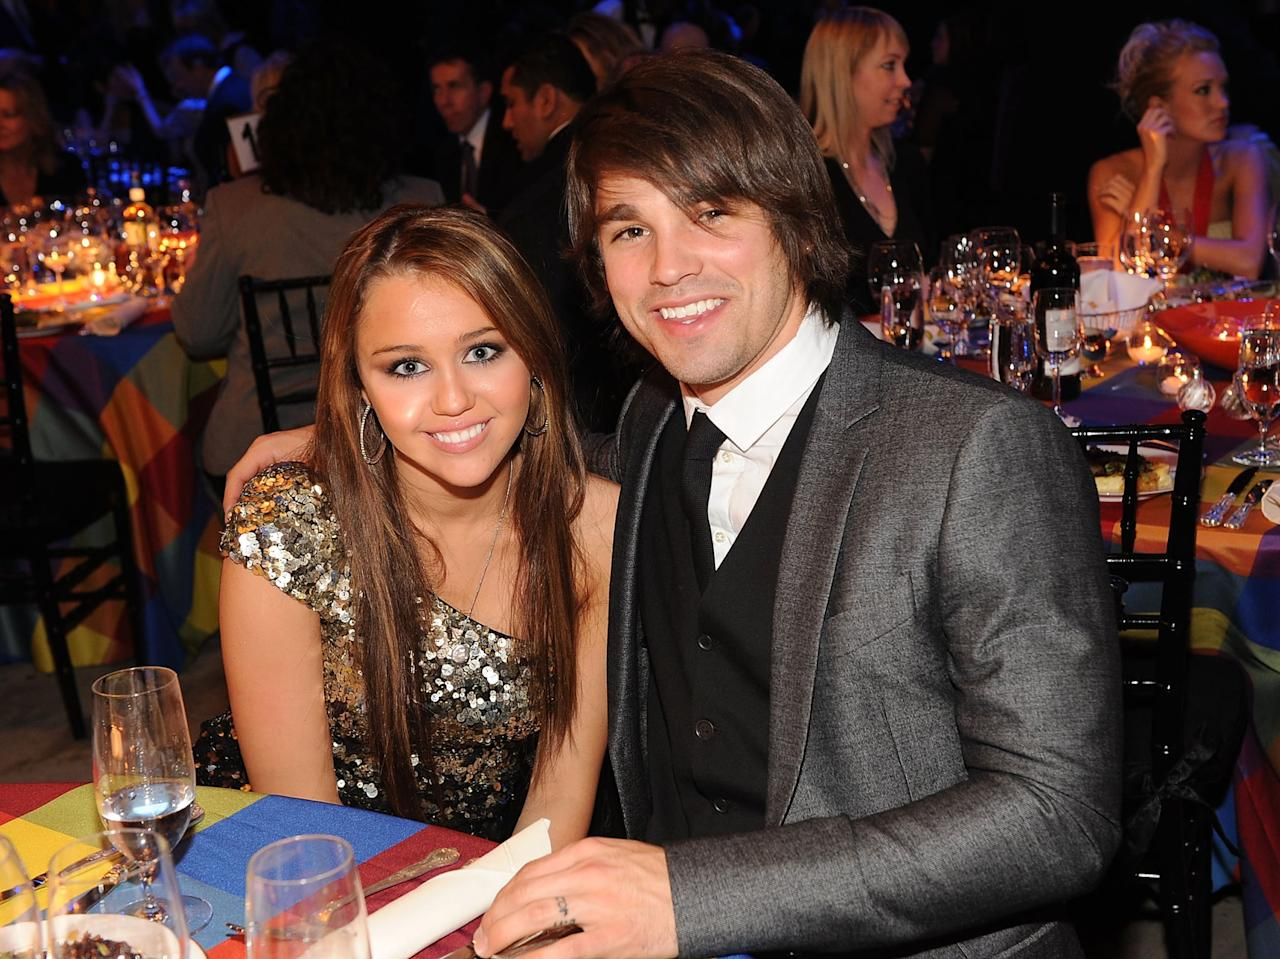 "<p>When Miley was 15, she struck up a relationship with Justin, who was 20 at the time, after he competed on her dad Billy Ray Cyrus's reality show <strong>Nashville Star</strong>. While it's unclear what led to their split (<a href=""http://www.mtv.com/news/1613544/miley-cyrus-and-justin-gaston-have-split-up-sources-say/"" target=""_blank"" class=""ga-track"" data-ga-category=""Related"" data-ga-label=""http://www.mtv.com/news/1613544/miley-cyrus-and-justin-gaston-have-split-up-sources-say/"" data-ga-action=""In-Line Links"">some say her rekindled friendship with Nick Jonas was to blame</a>), they called it quits nine months later in 2009 when Miley left to film <strong>The Last Song</strong> in Savannah, GA. </p>"